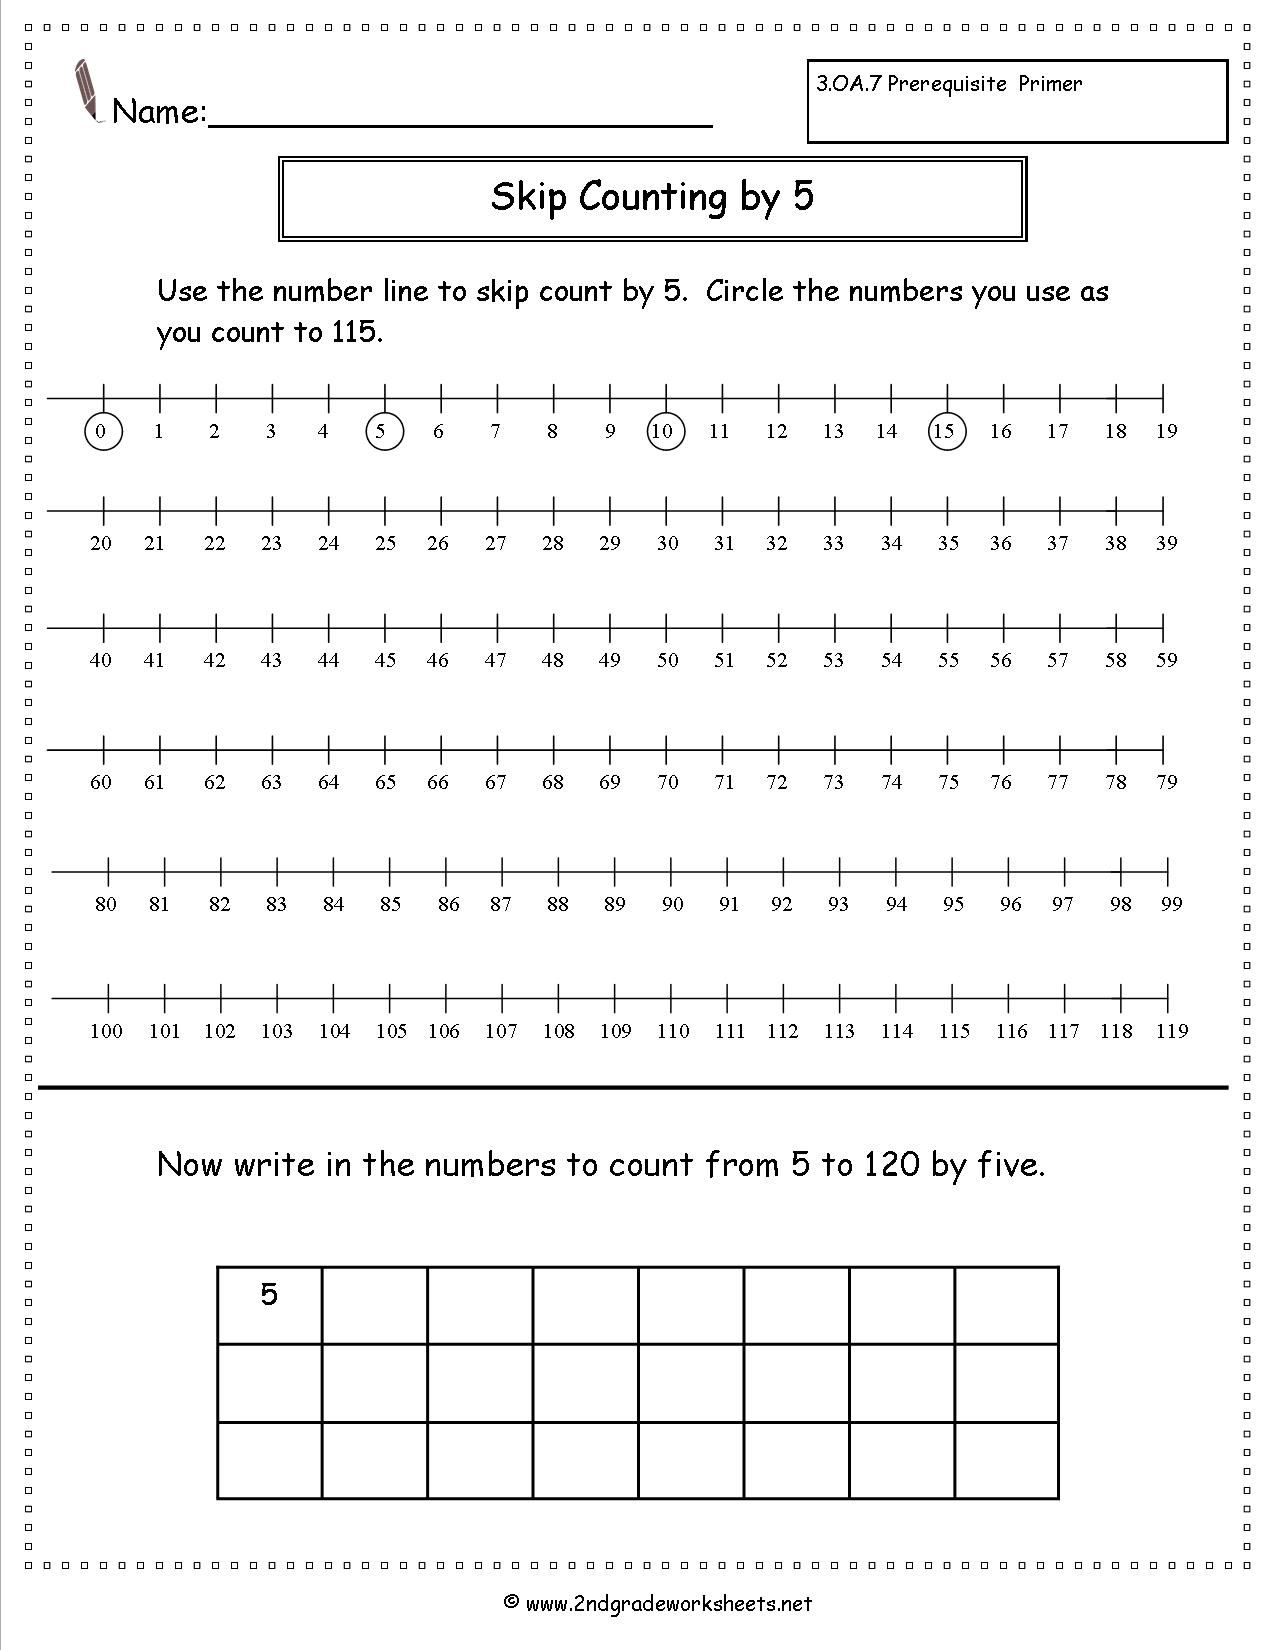 Worksheets Free Skip Counting Worksheets skip counting by 5 worksheet homework pinterest worksheet